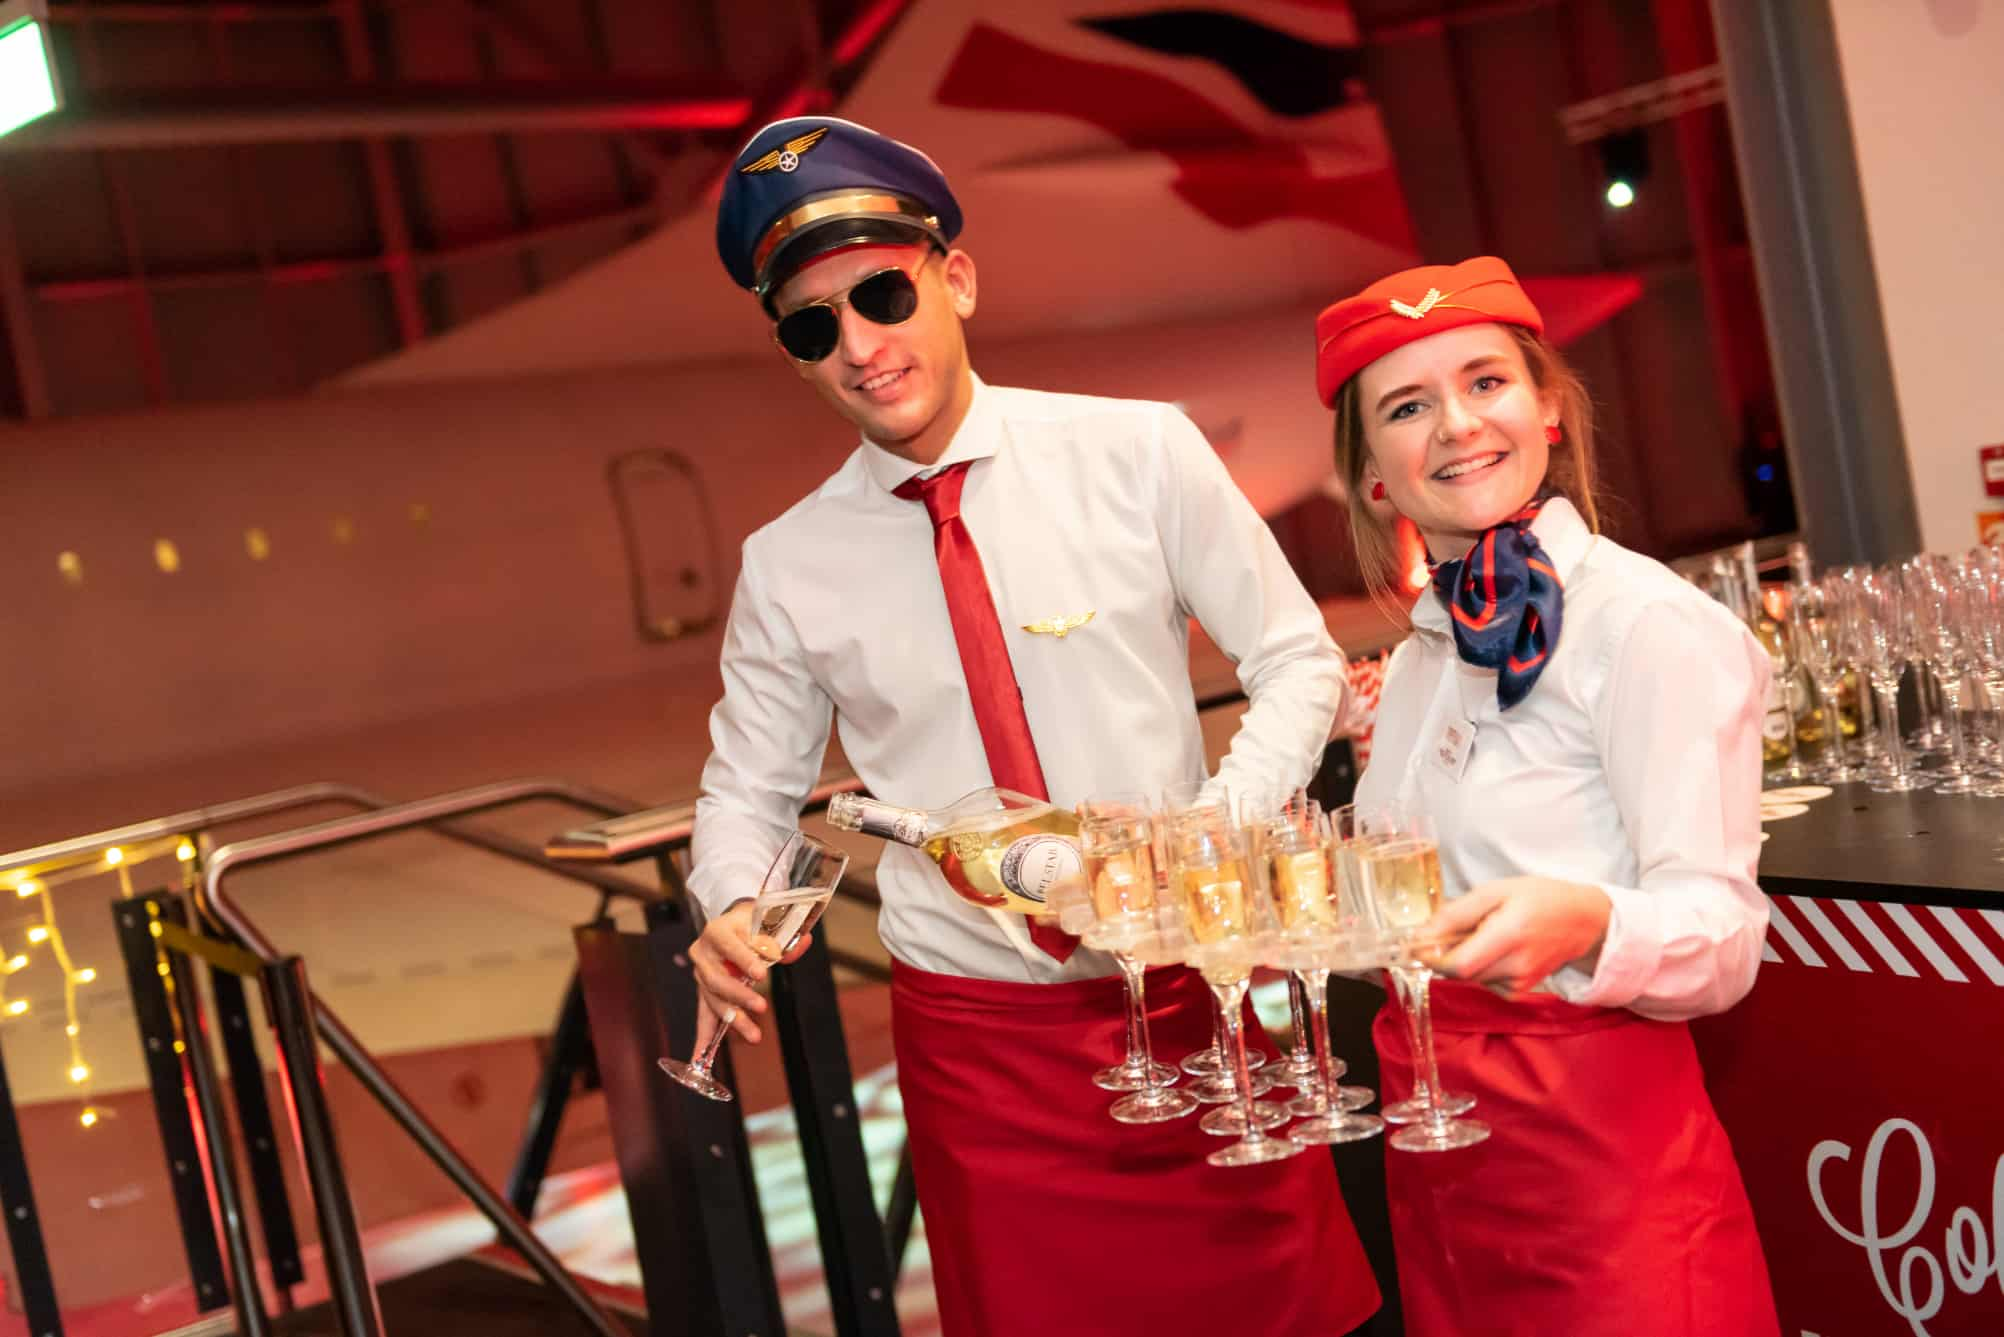 Air Steward Waiting Staff